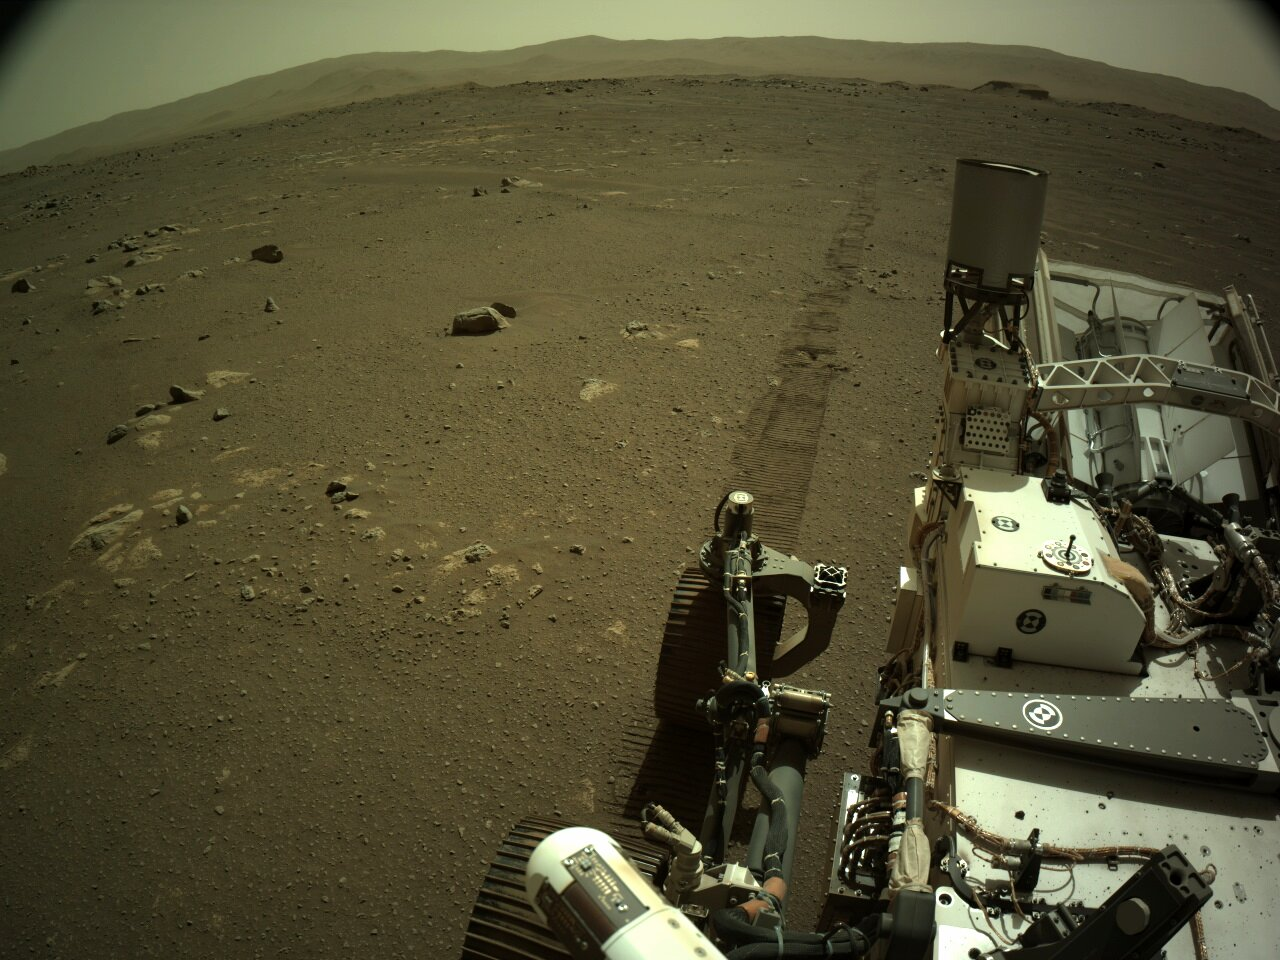 Perseverance rover captures the sounds of driving on Mars